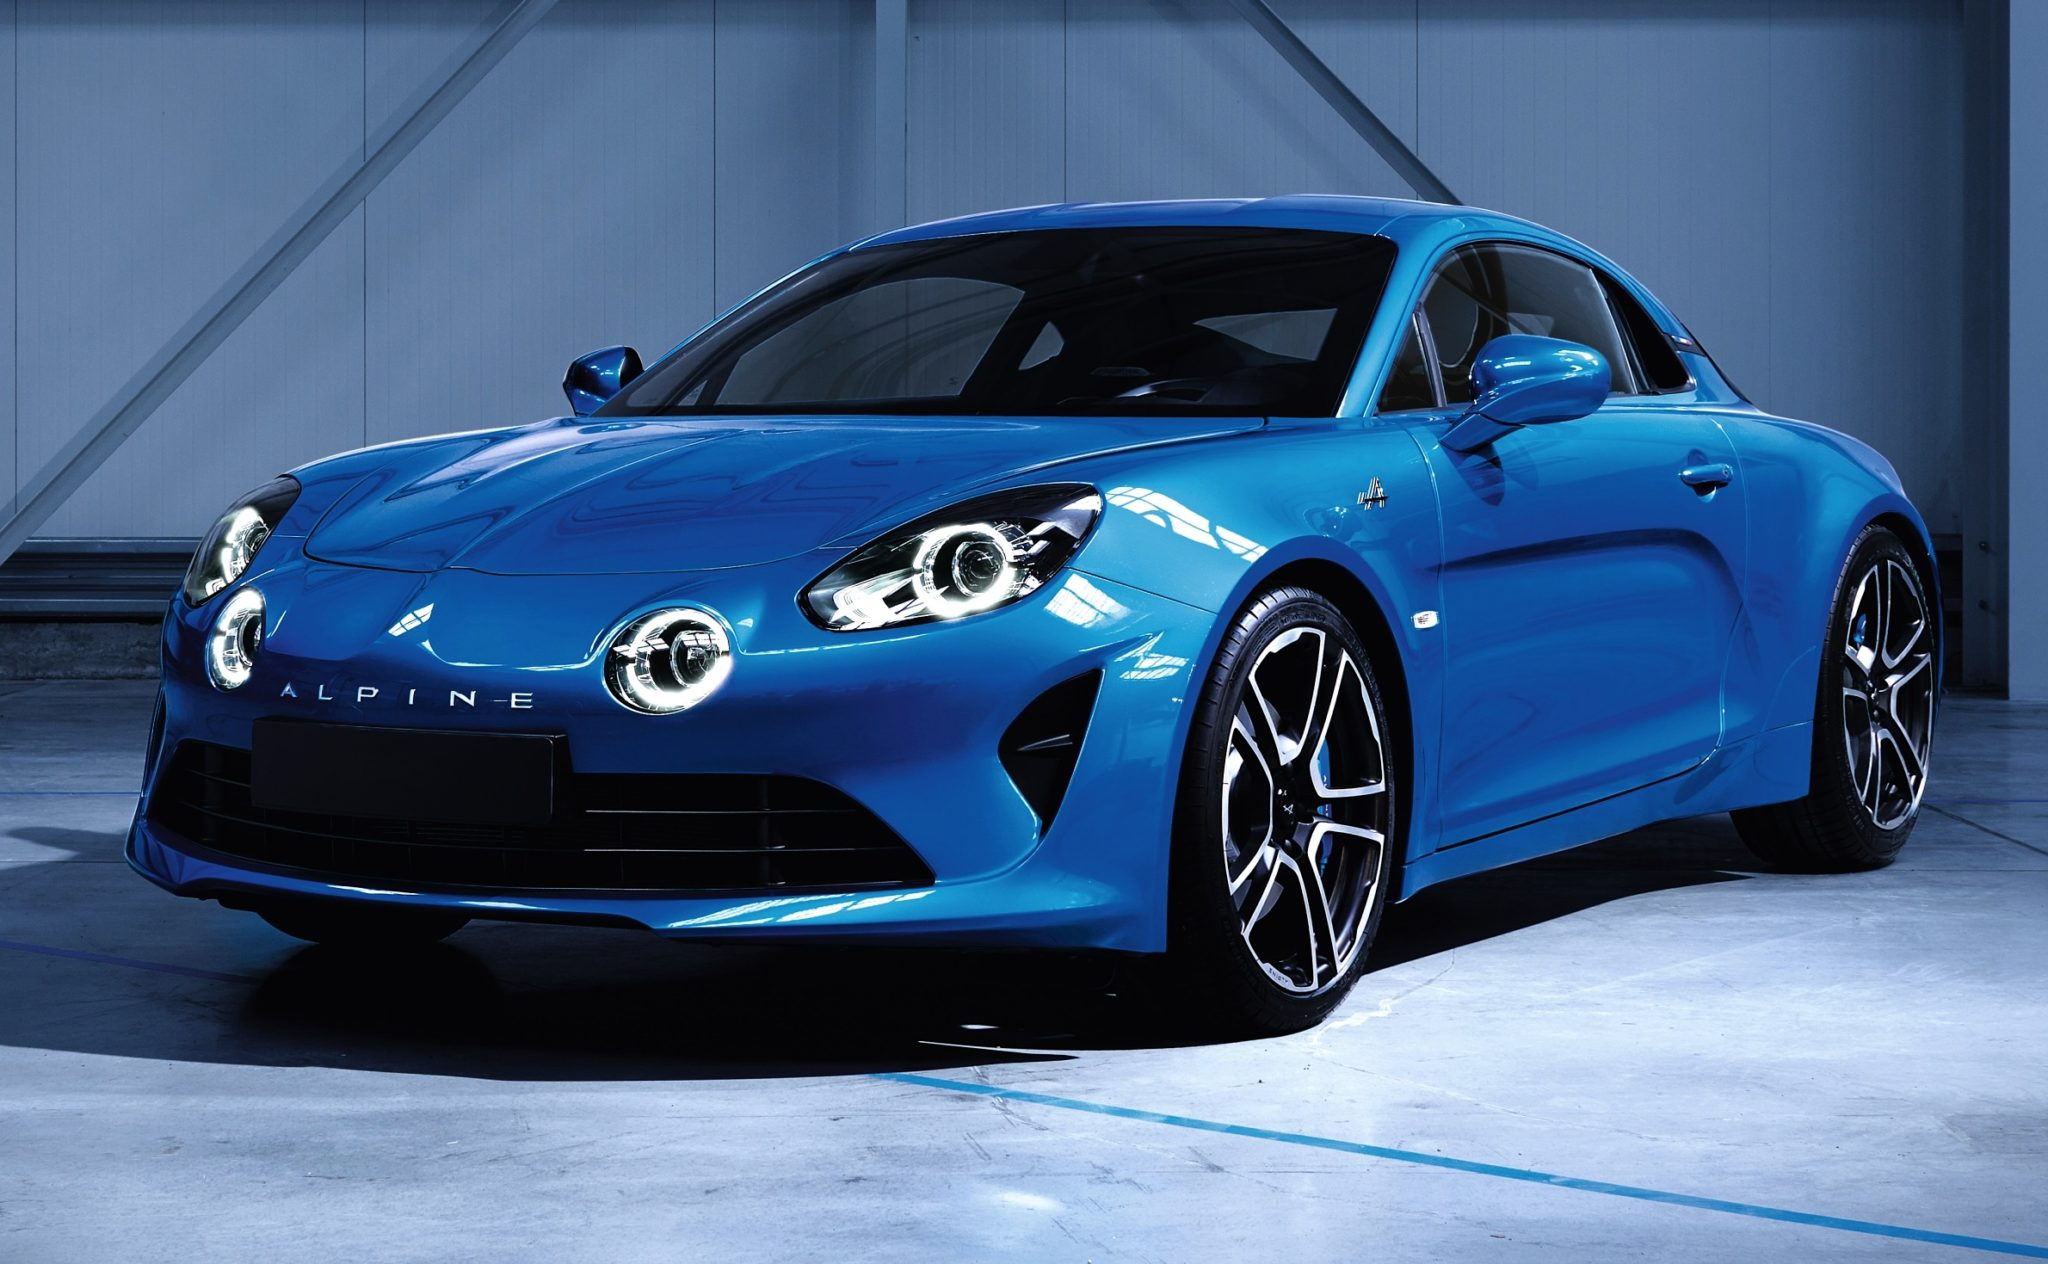 renault alpine a110 il grande ritorno motorage new generation. Black Bedroom Furniture Sets. Home Design Ideas